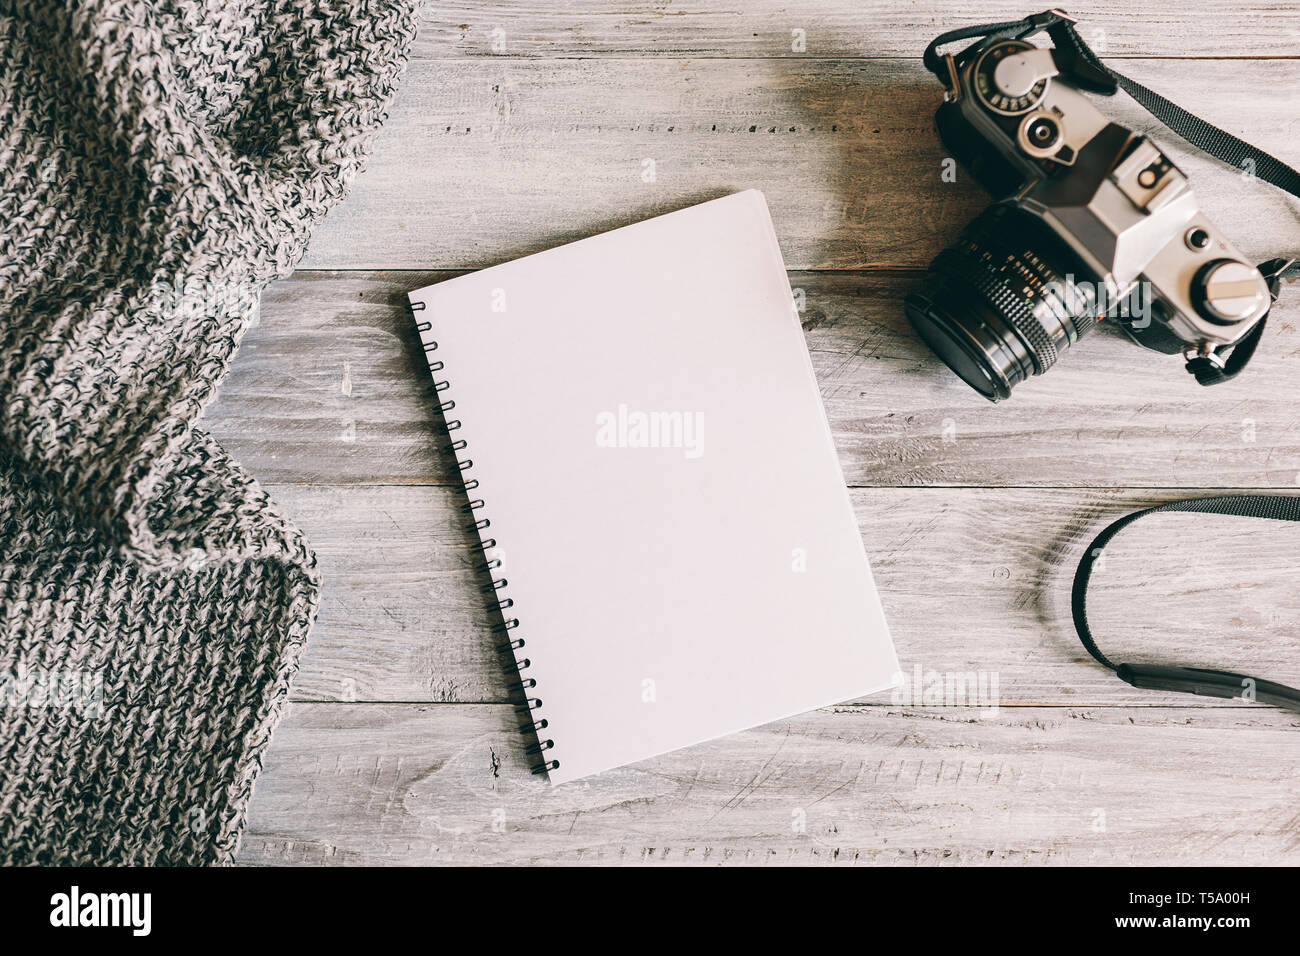 Accessories of traveler on wooden table in flat lay design. Travel concept. - Stock Image